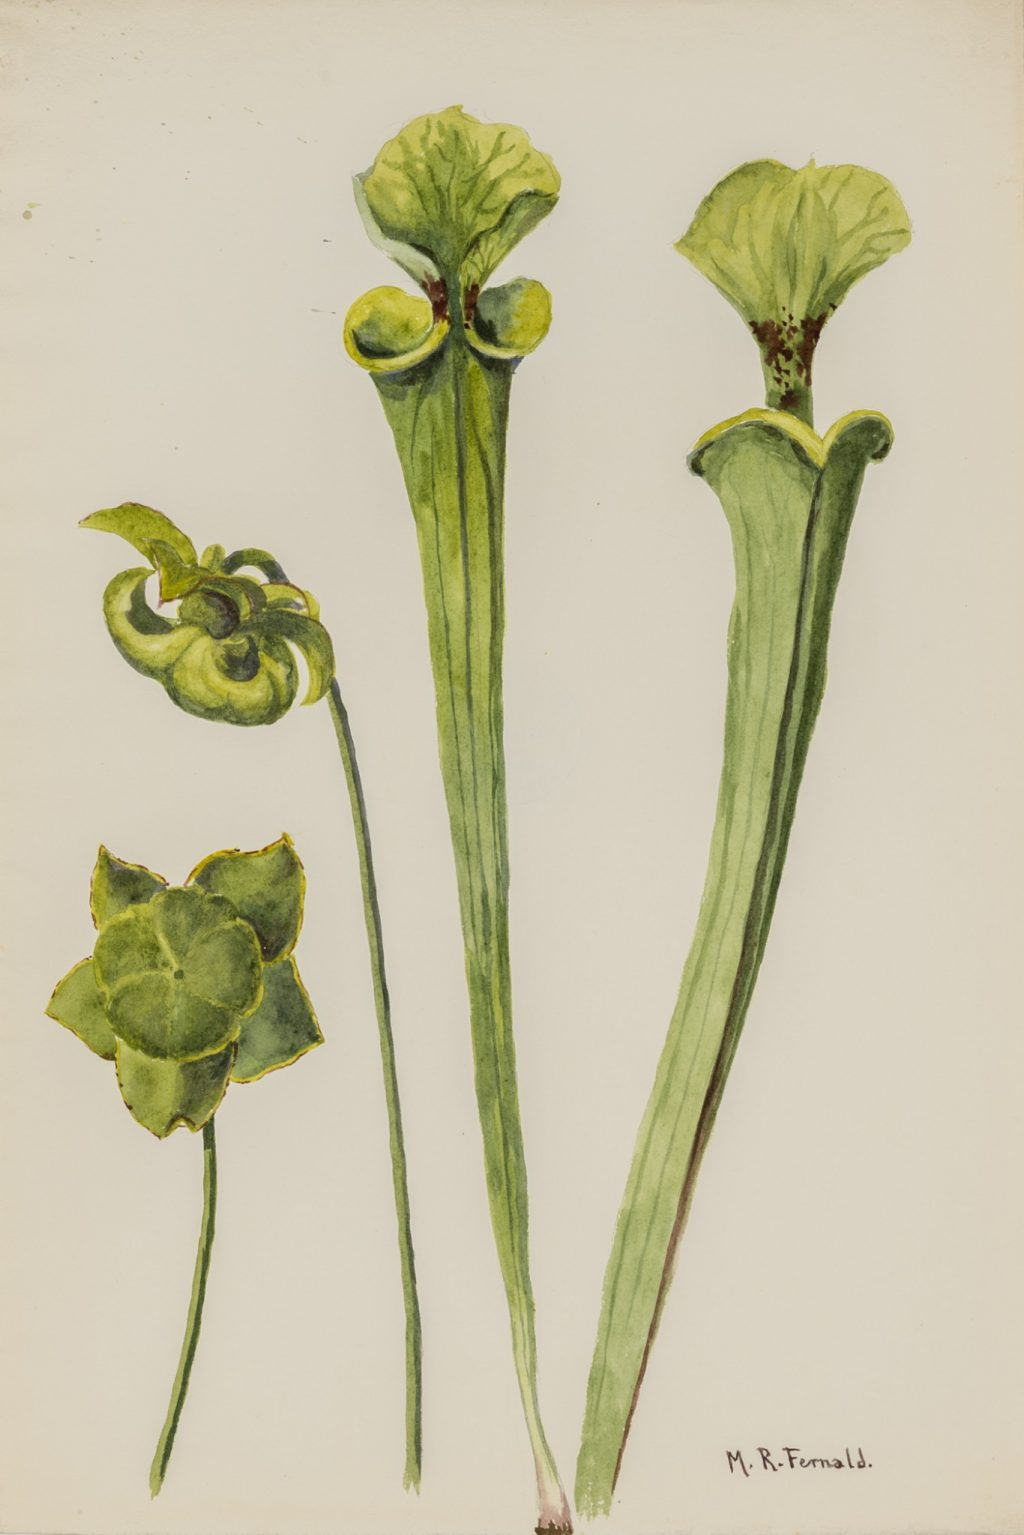 Painting of a tall, green plant